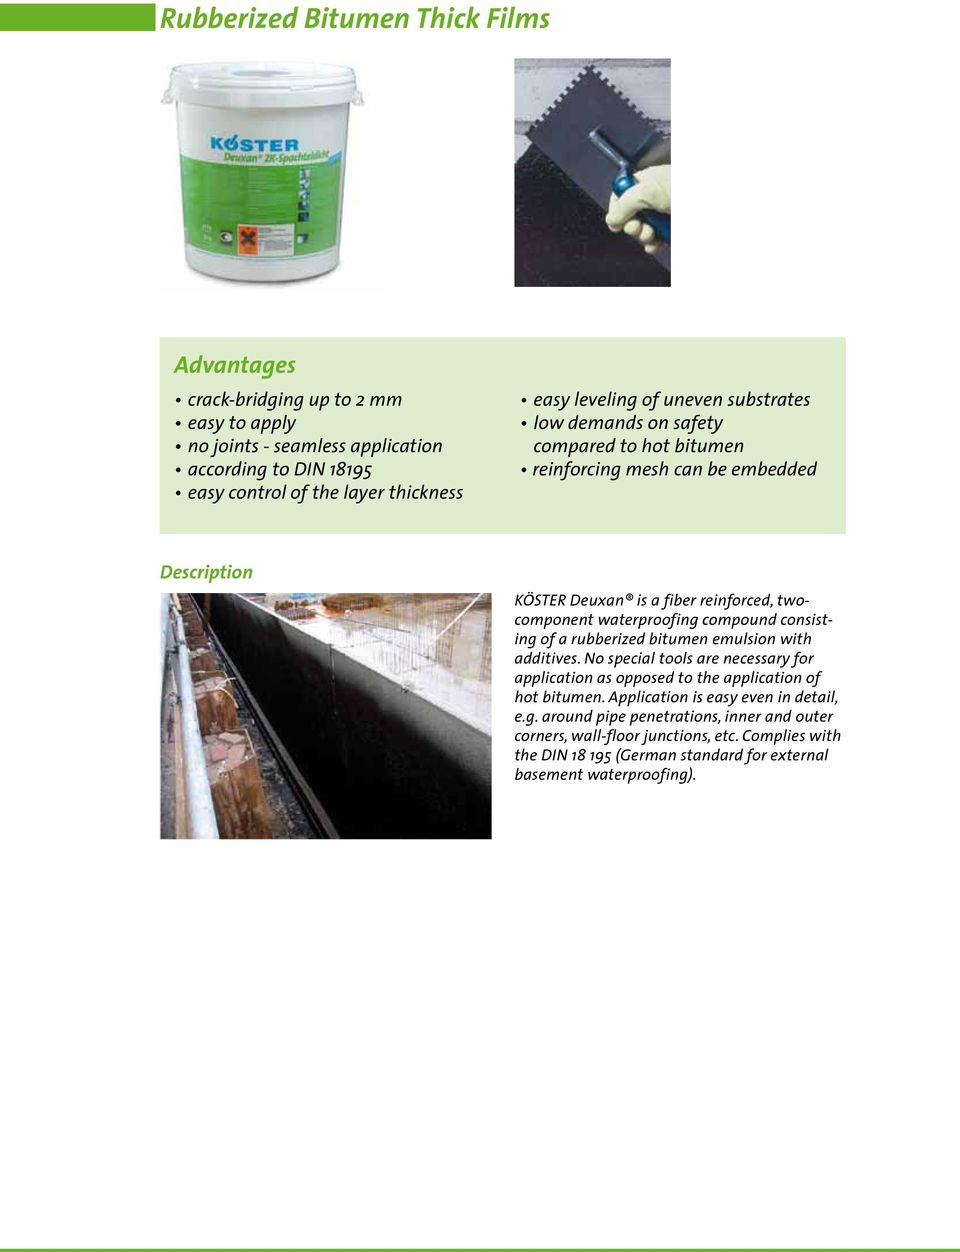 waterproofing compound consisting of a rubberized bitumen emulsion with additives. No special tools are necessary for application as opposed to the application of hot bitumen.